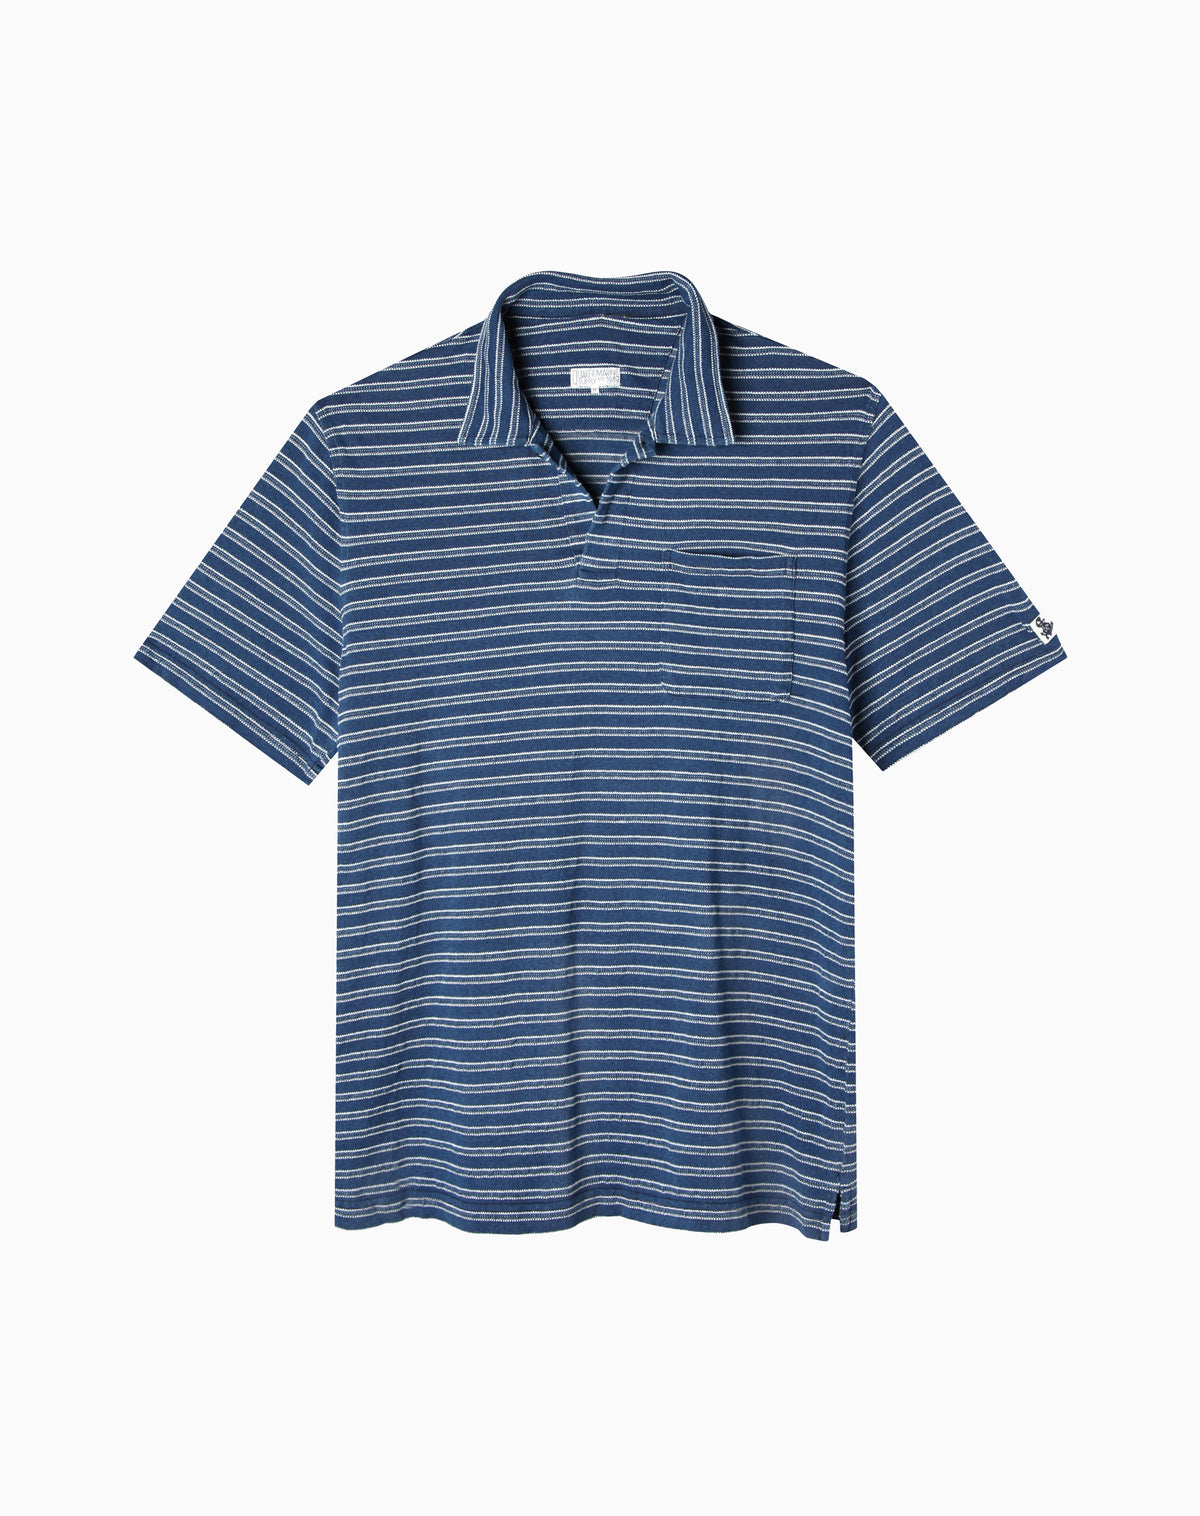 Indigo Jacquard Stripe Polo in Mid Wash